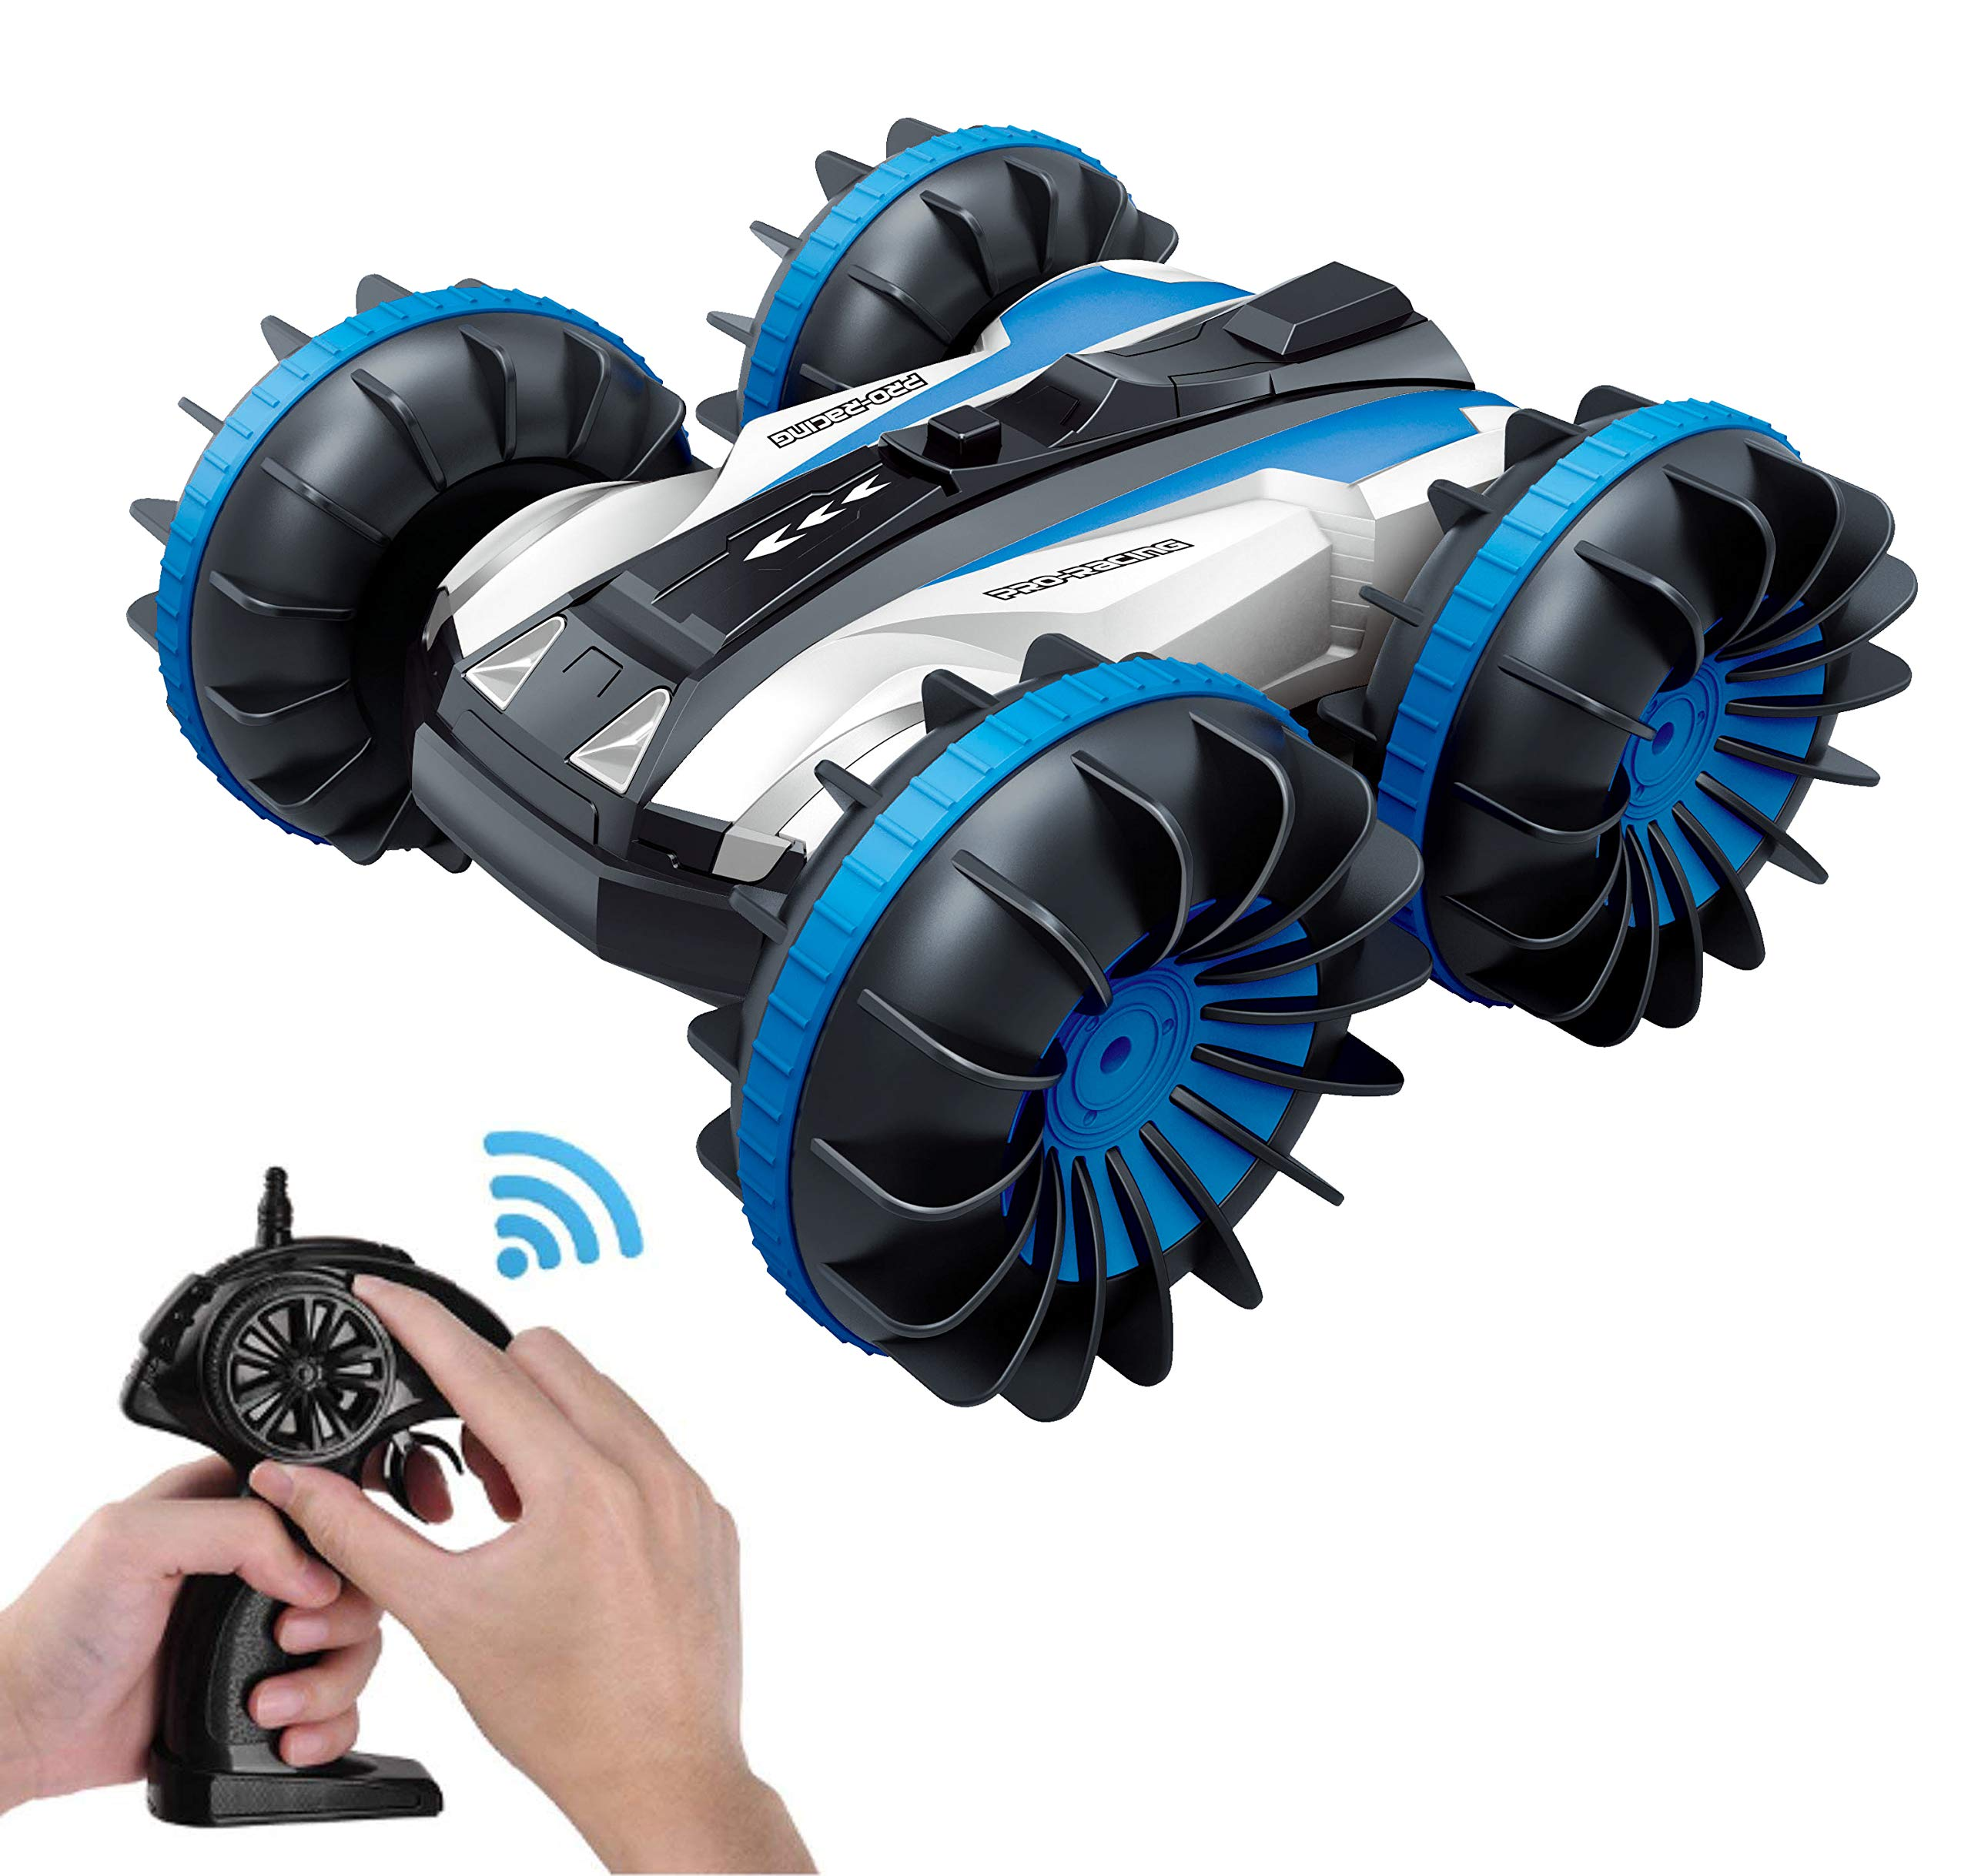 KINGBOT Waterproof RC Car, 2.4Ghz 4WD Stunt Car 6CH Remote Control Amphibious Off Road Electric Race Cars with 2 Sides Tank Vehicle 306° Spins & Flips Water & Land Electric Stunt Car Toys for Children